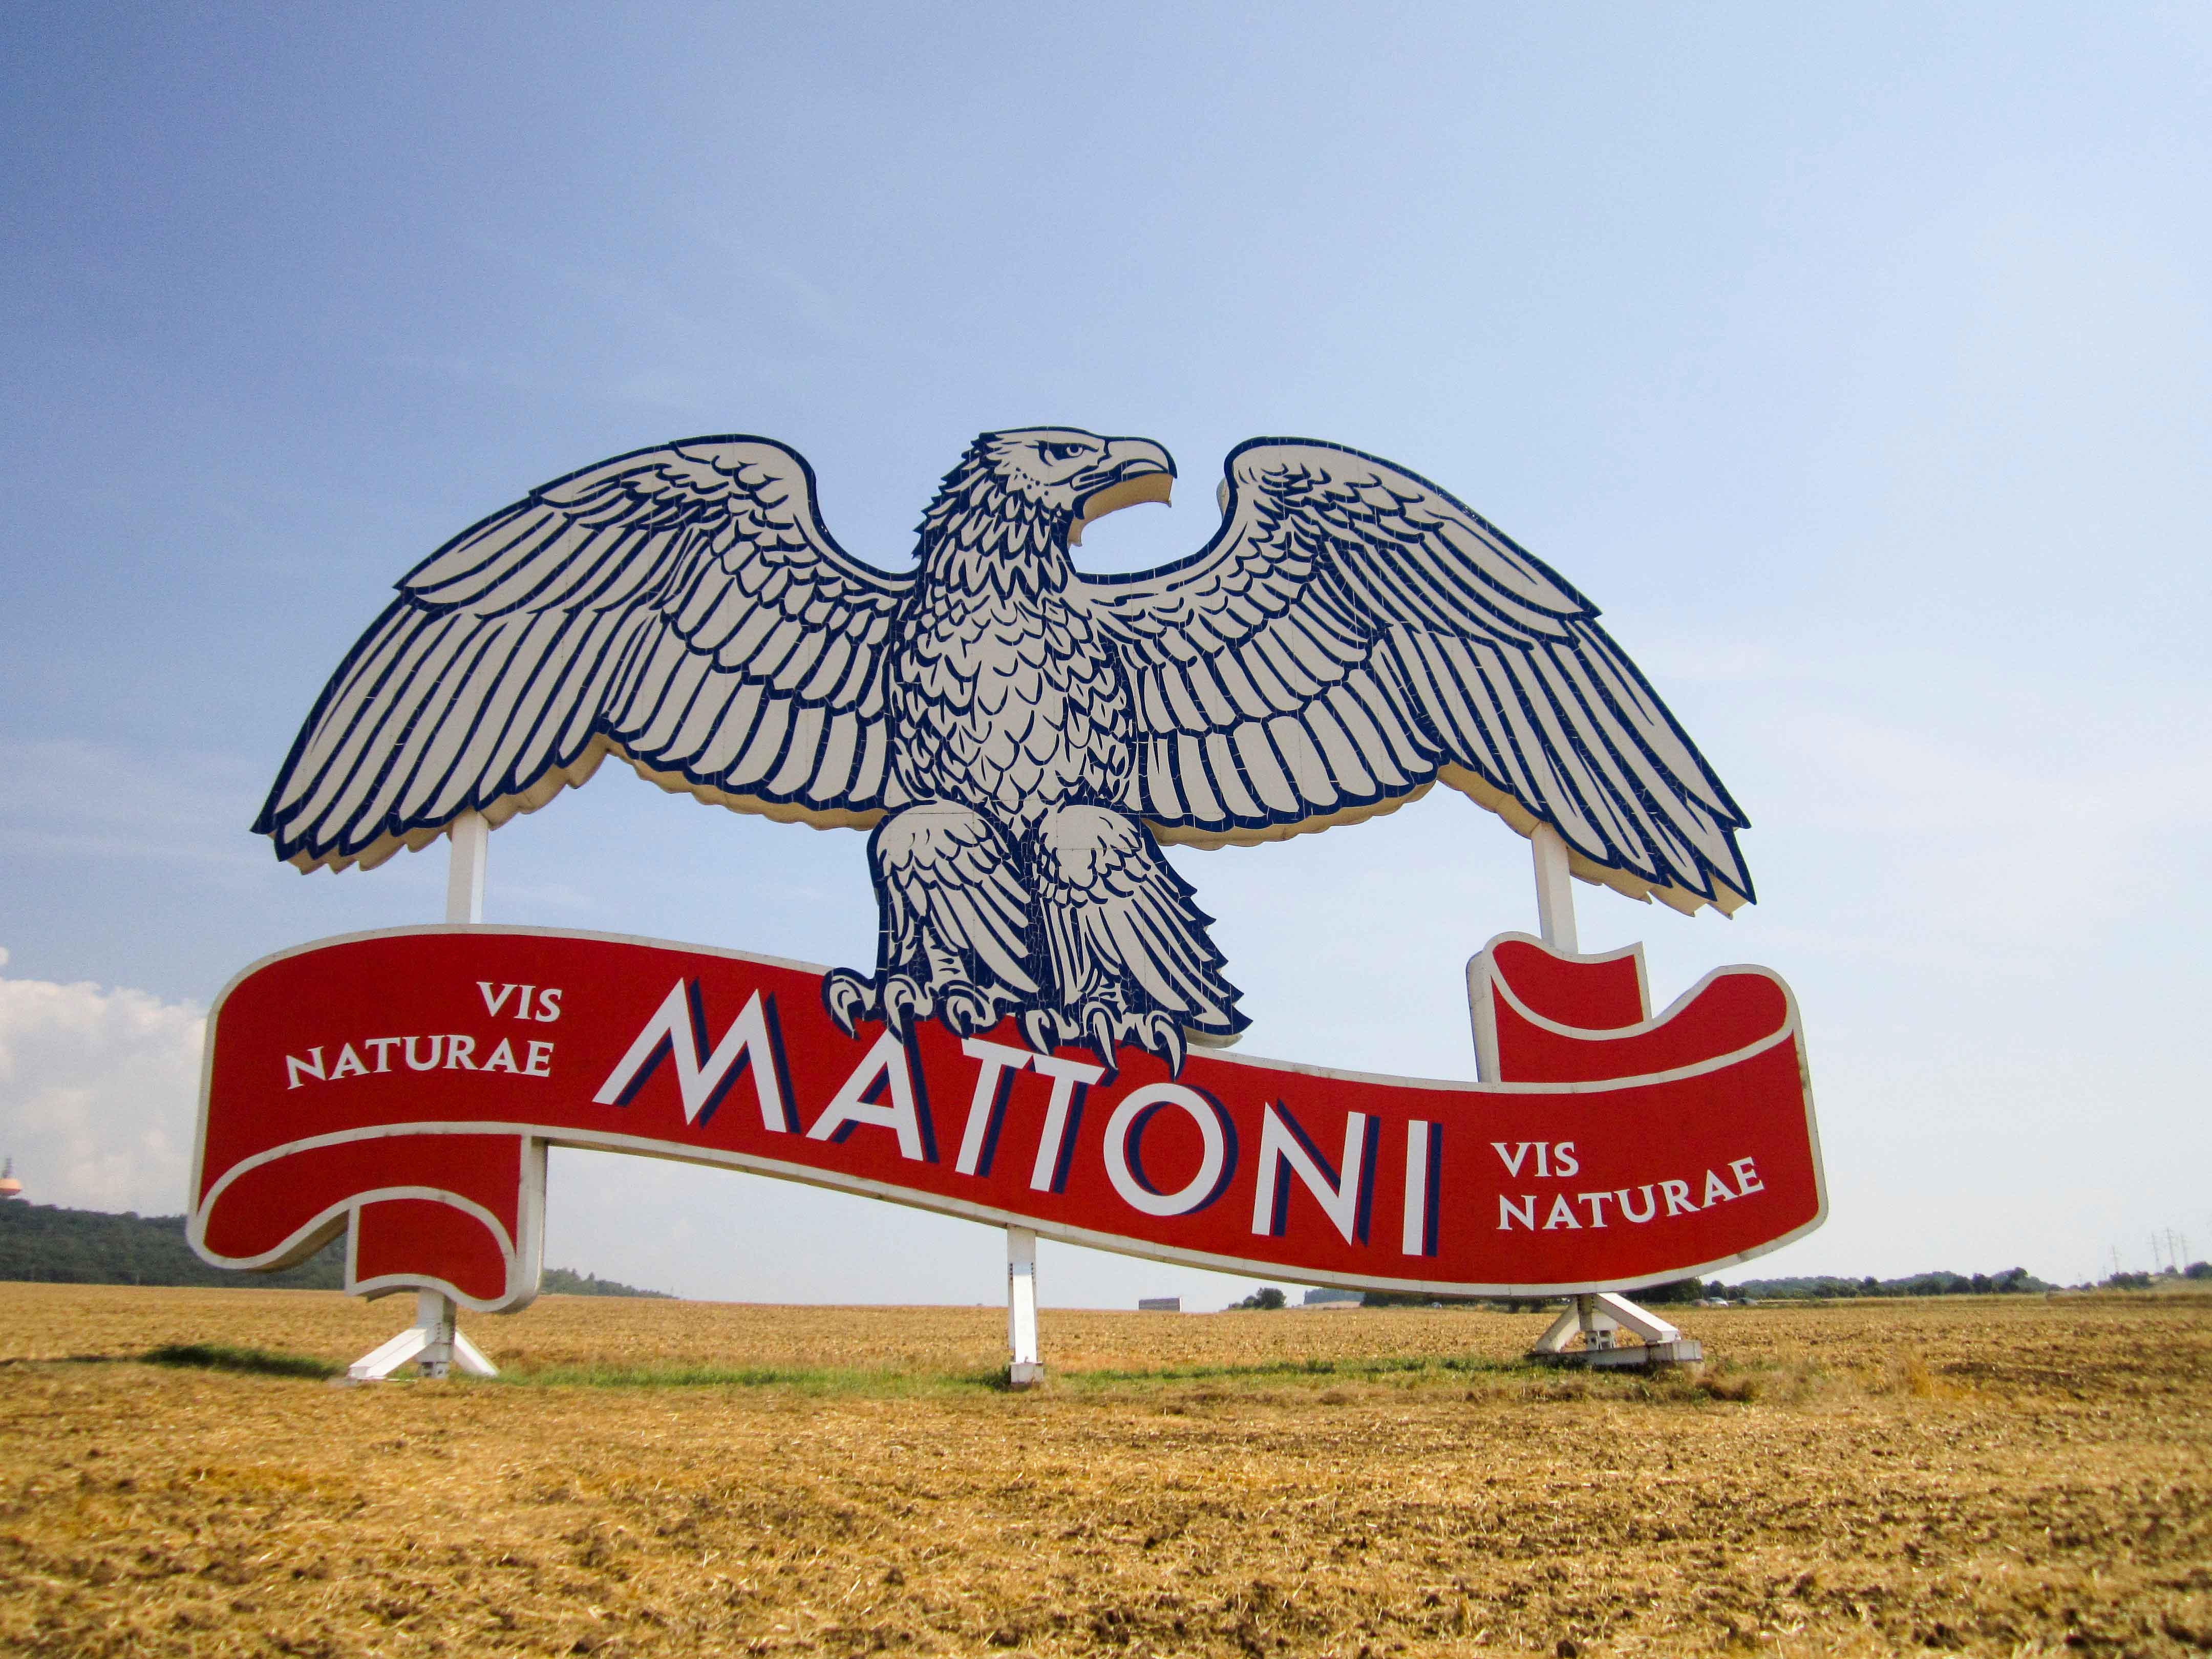 Mattoni's trademark is the white eagle